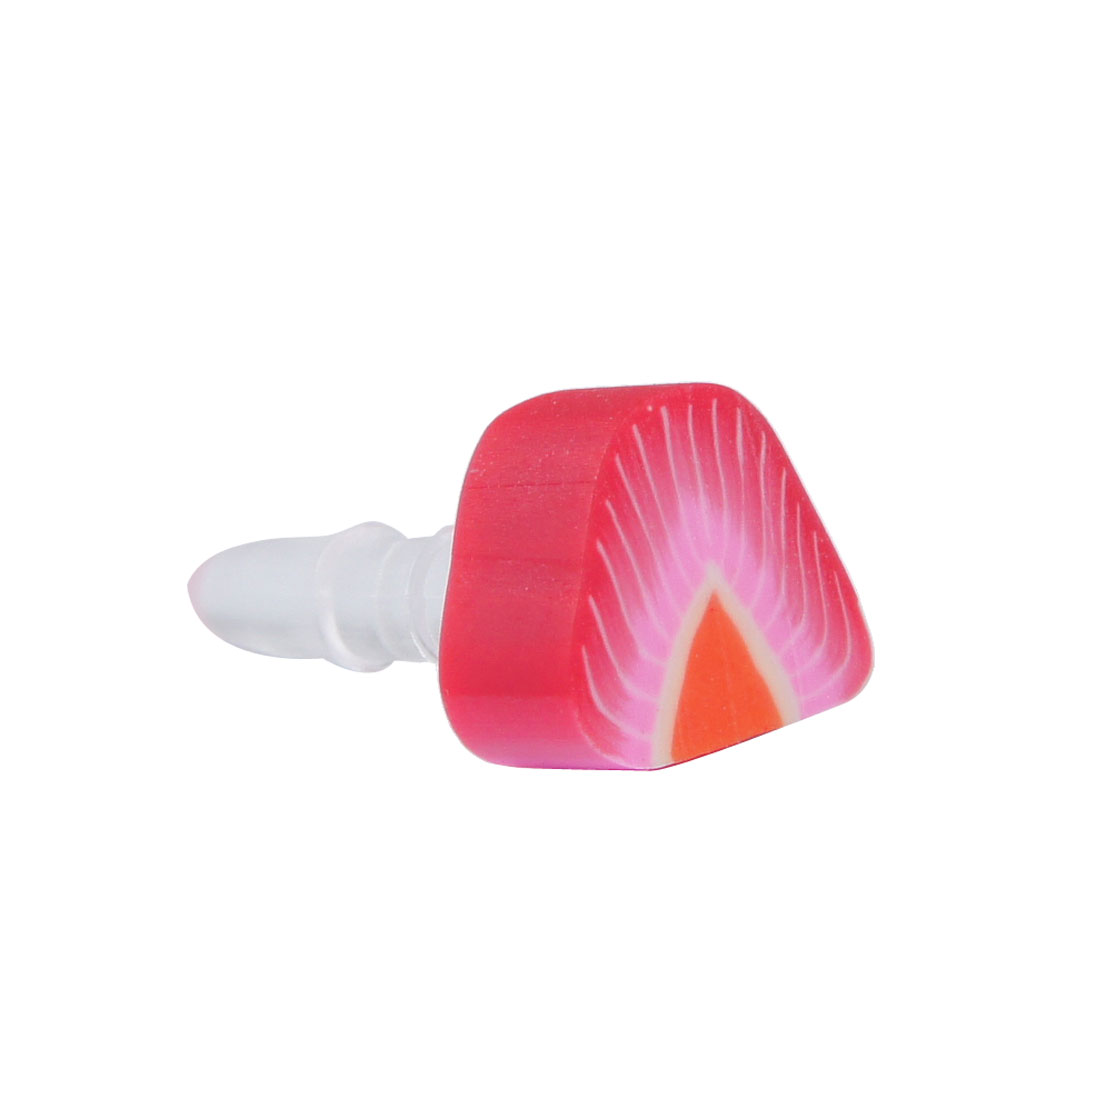 Red-Fruit-Accent-3-5mm-Dust-proof-Ear-Cap-Plug-Stopper-for-Mobile-Phone-MP3